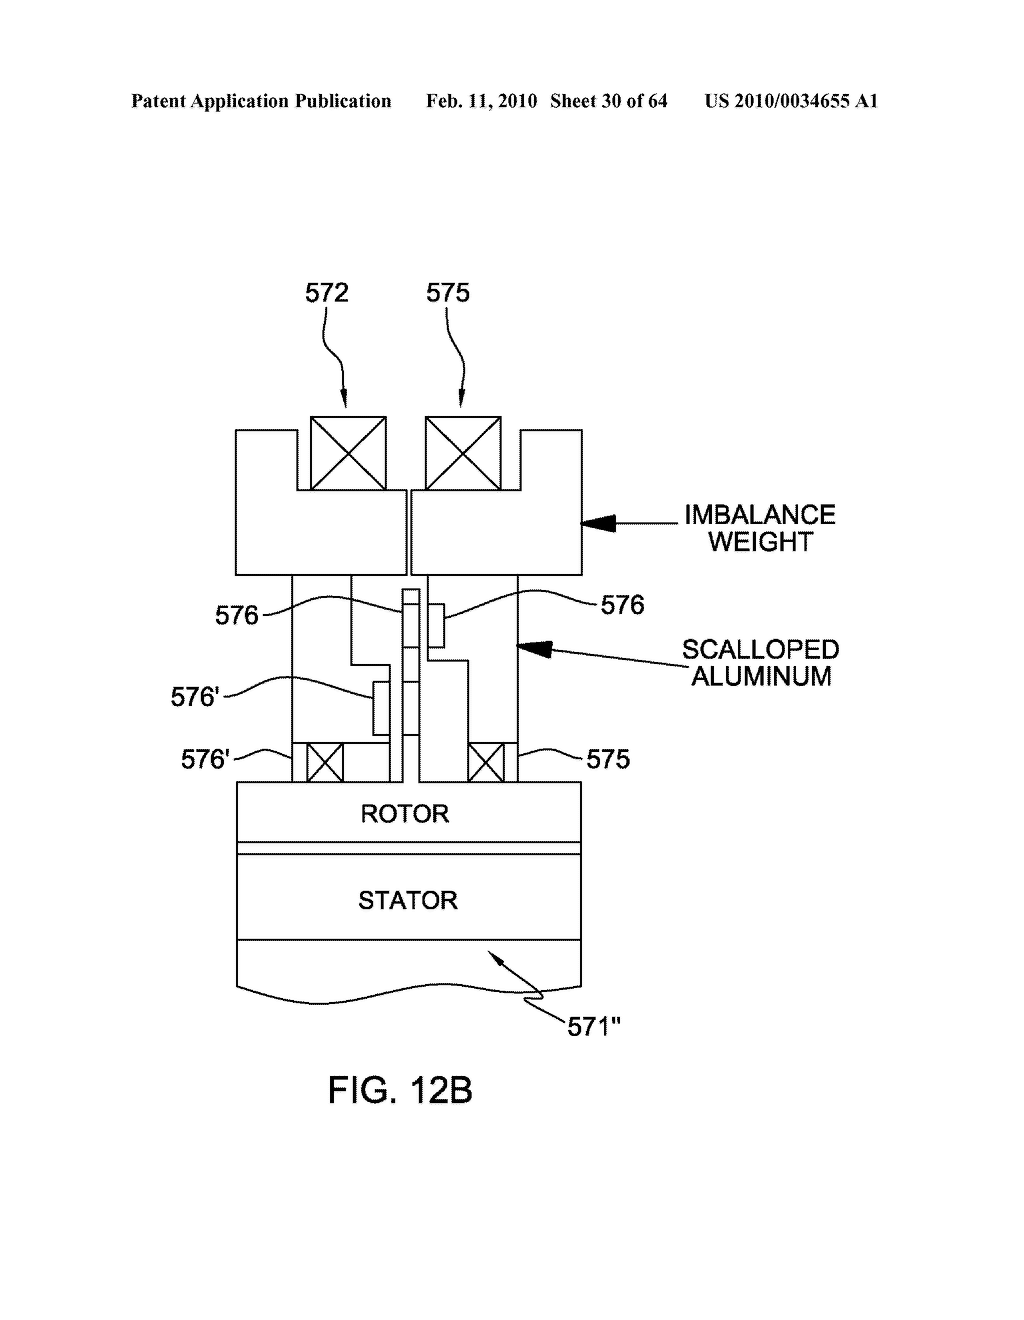 HELICOPTER HUB MOUNTED VIBRATION CONTROL AND CIRCULAR FORCE GENERATION SYSTEMS FOR CANCELING VIBRATIONS - diagram, schematic, and image 31